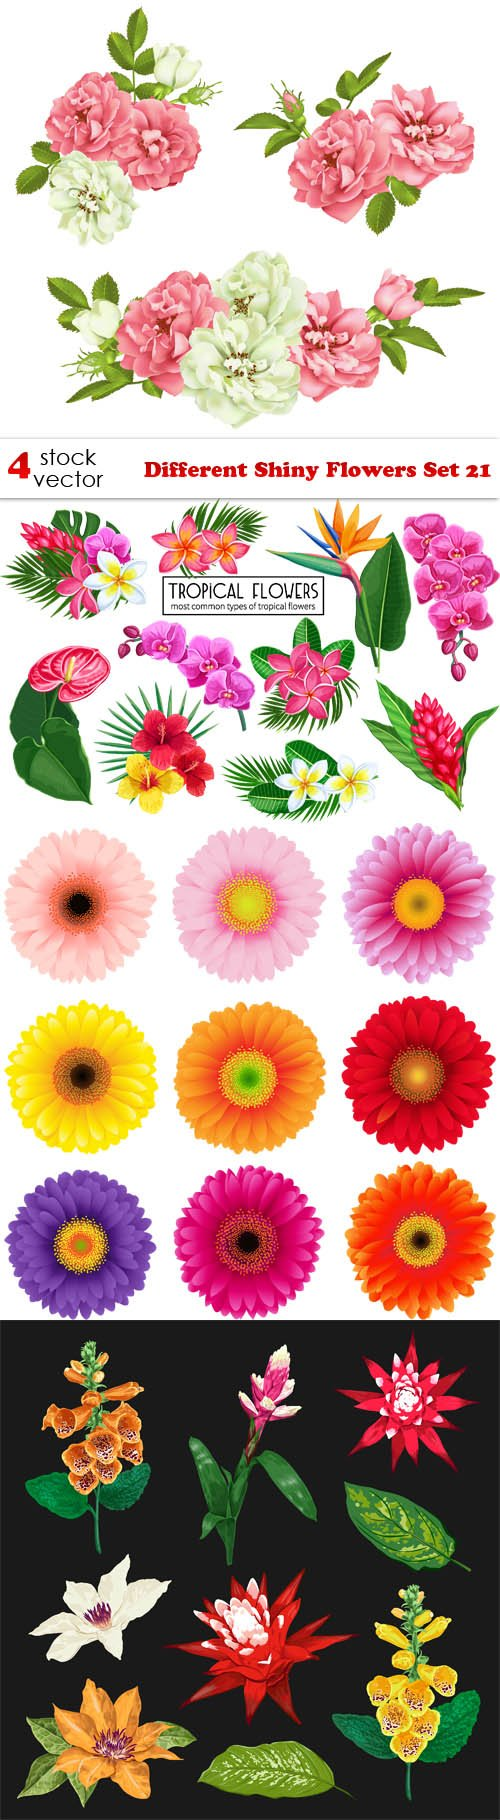 Vectors - Different Shiny Flowers Set 21